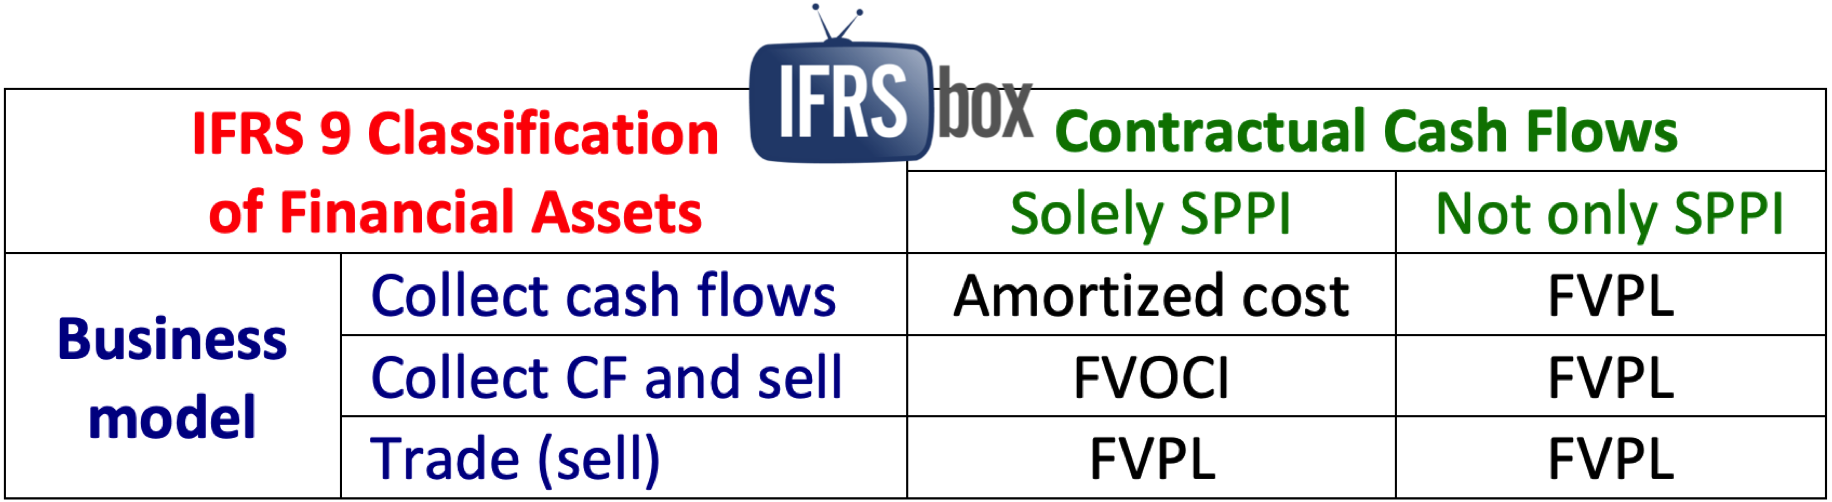 IFRS 9 Classification